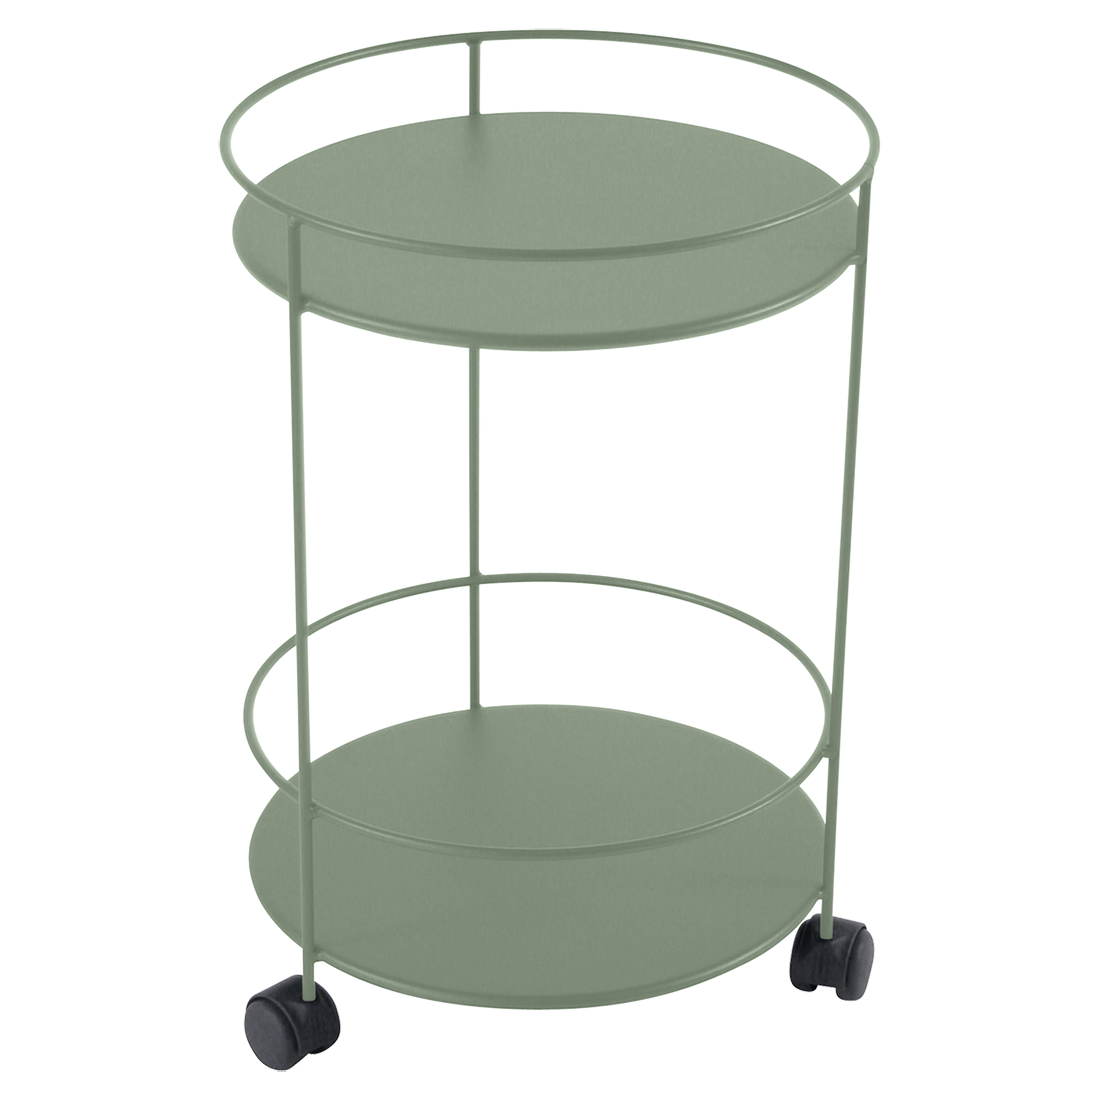 Fermob Gueridon Small table double top perforated outdoor – Small Table with Wheels